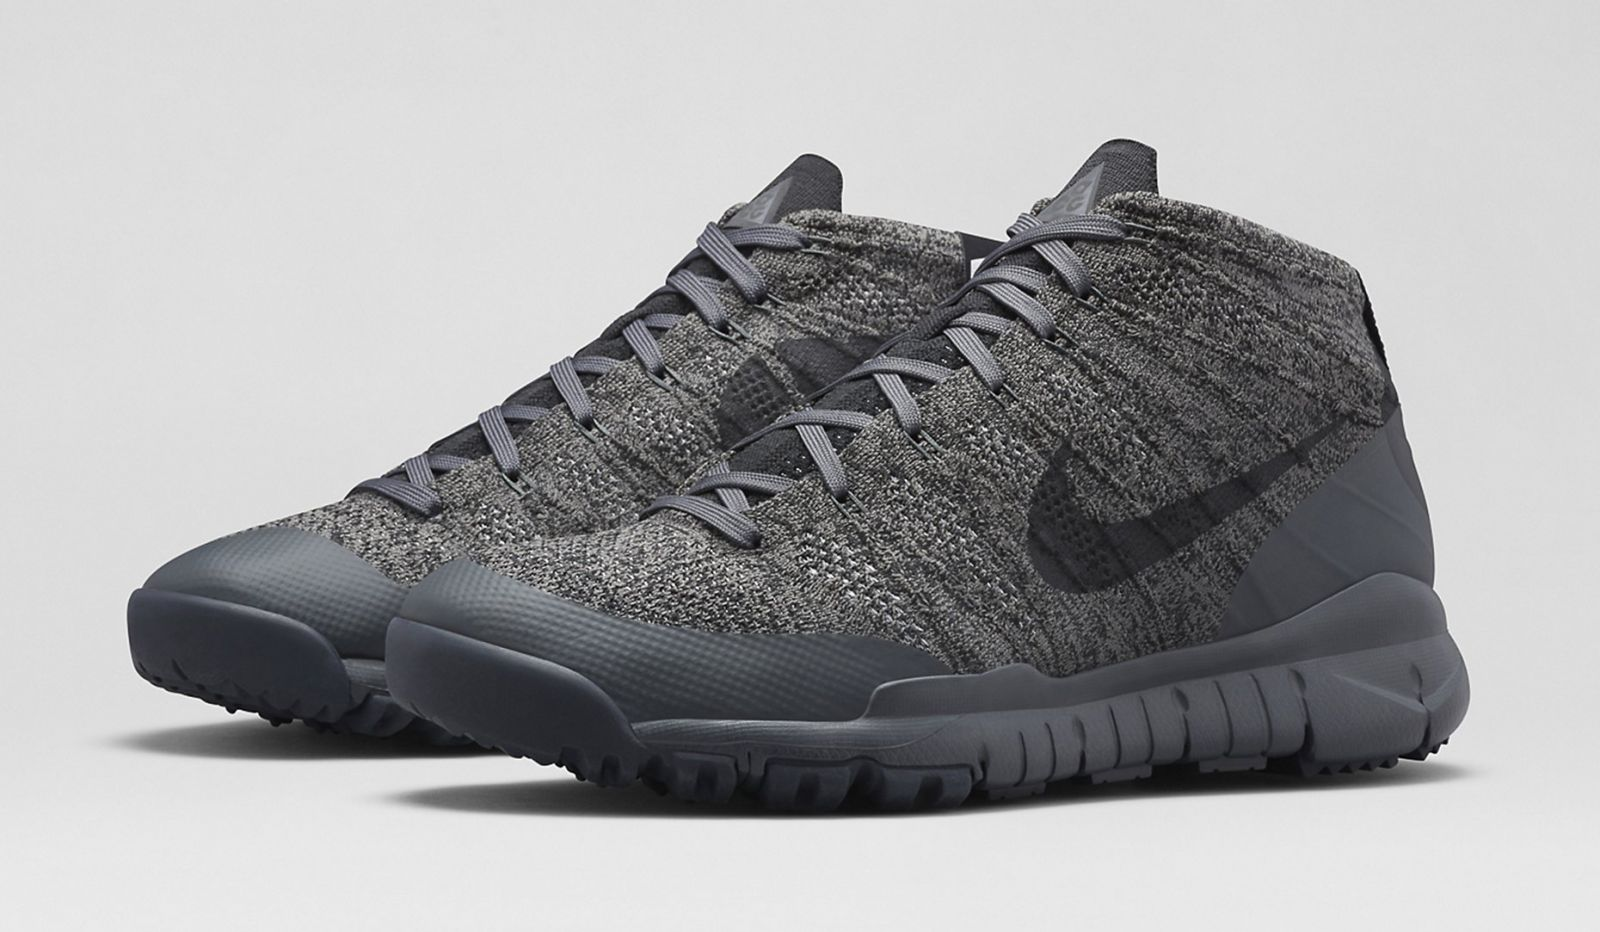 e50876f782a46a Nike ACG Flyknit Trainer Chukka FSB Release Date  12 18 14. Color   Black Anthracite-Black Style    728656-001. Price   220